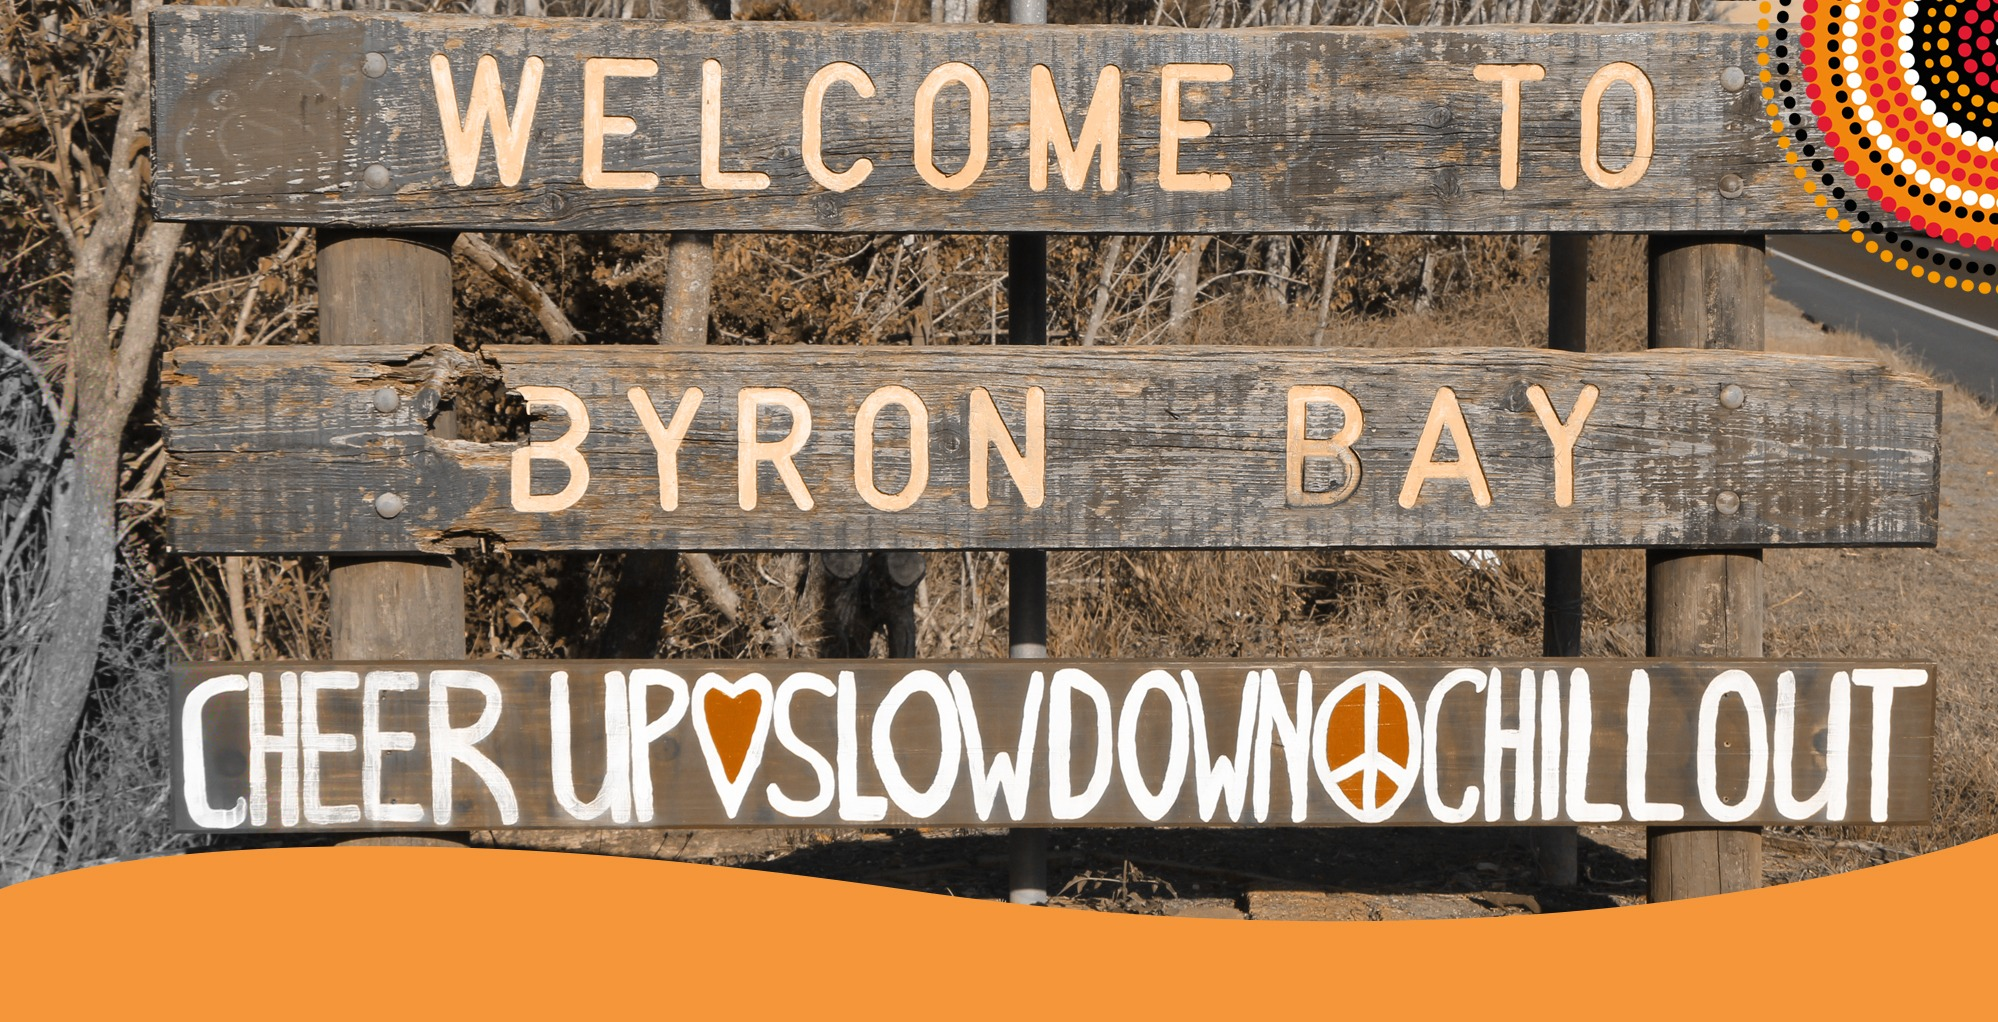 Welcome-to-ByronBay